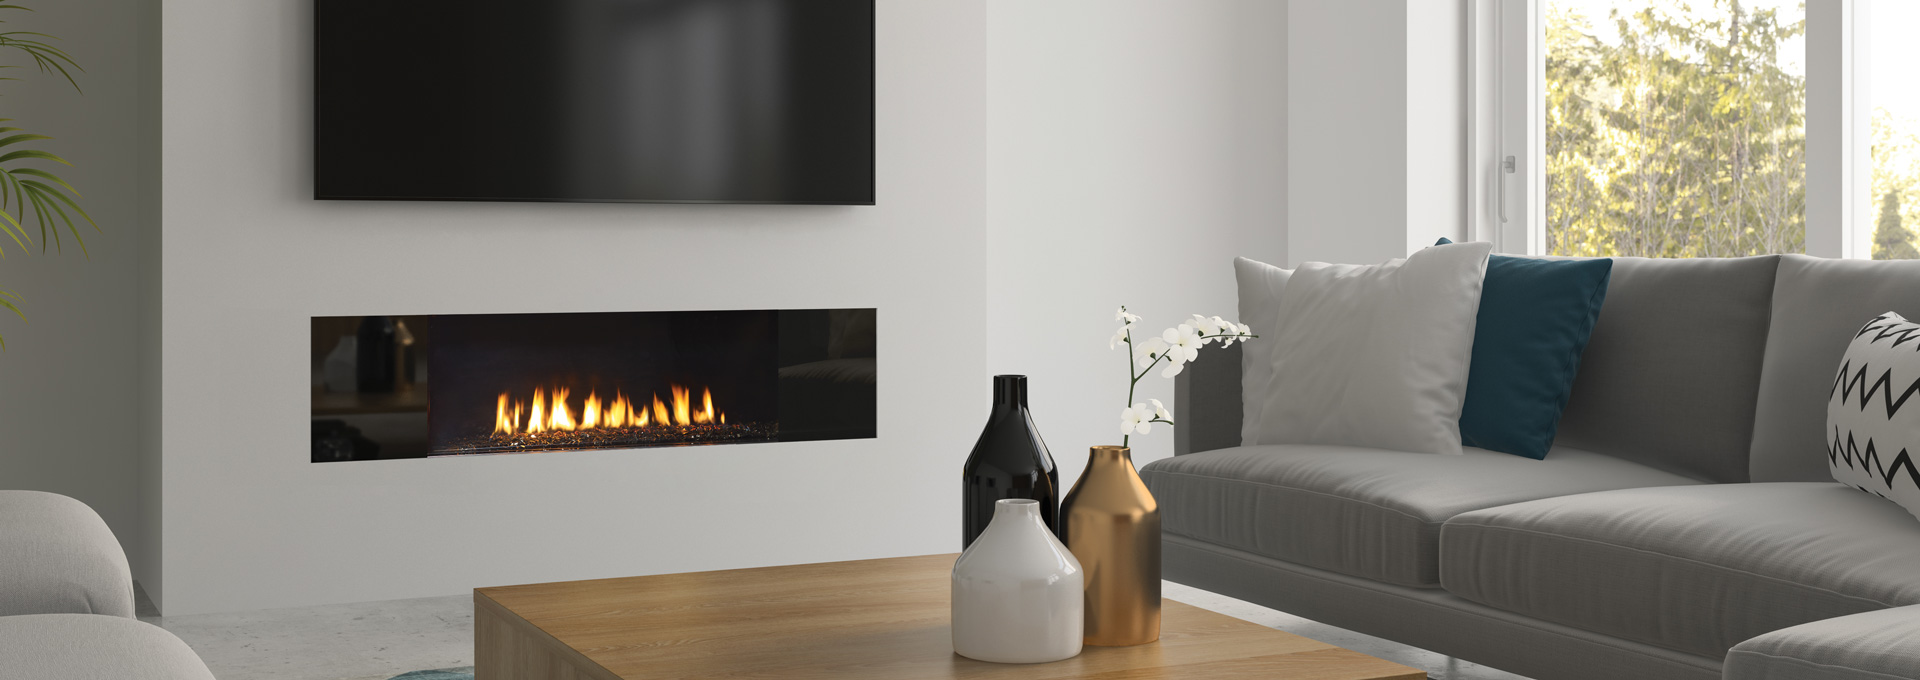 regency gas fireplace city series new york view 40 and 72